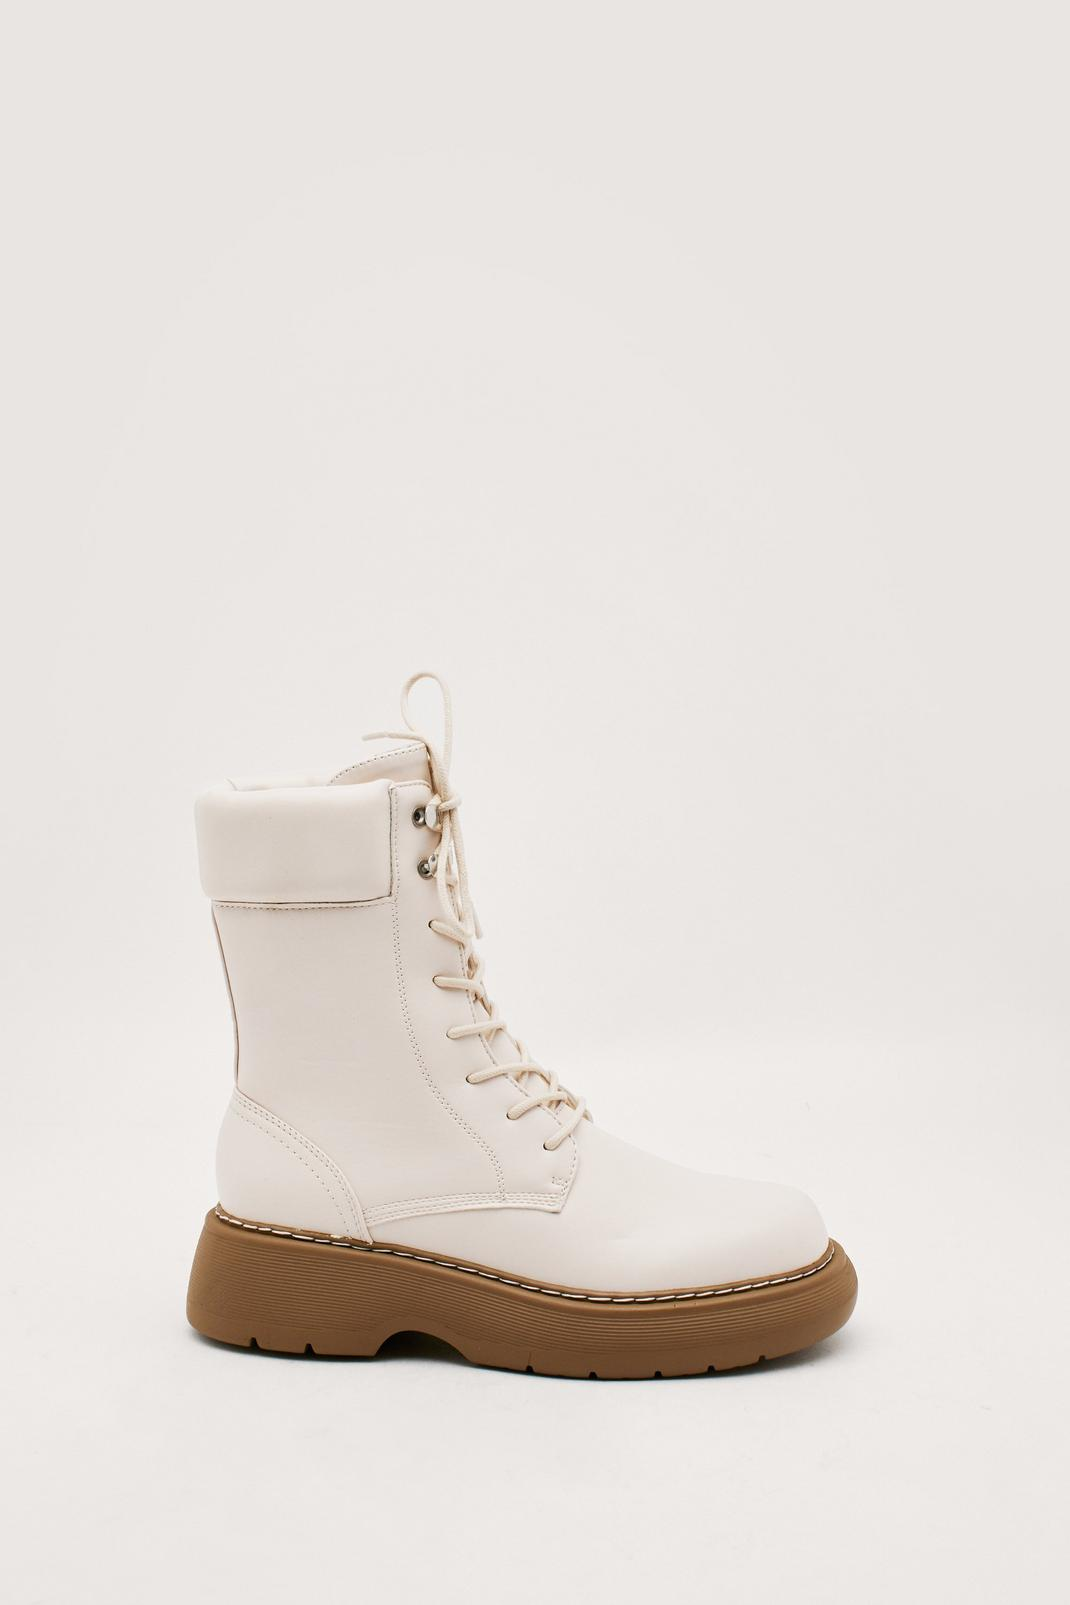 Faux Leather High Lace Up Biker Boots   NastyGal (FR)